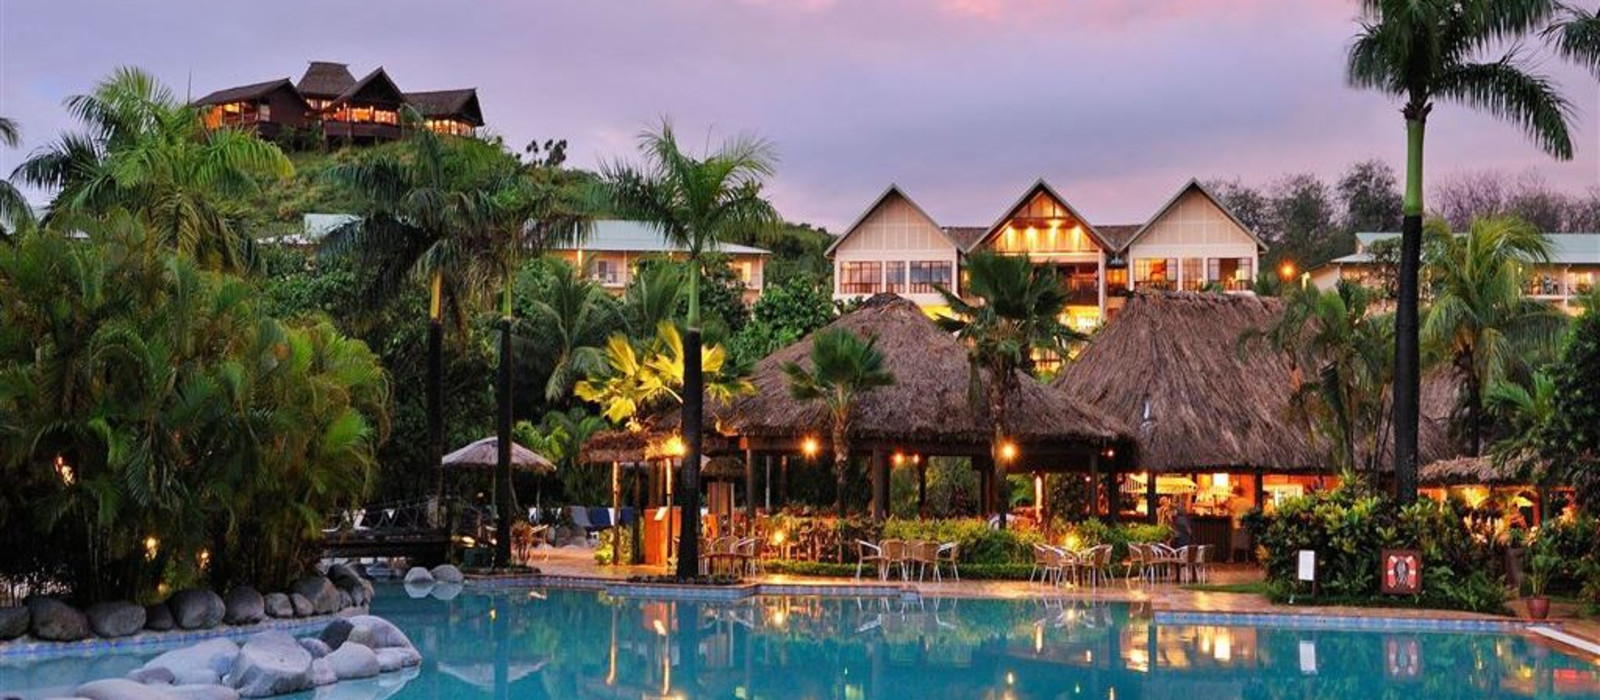 Hotel Outrigger Fiji Beach Resort Fiji